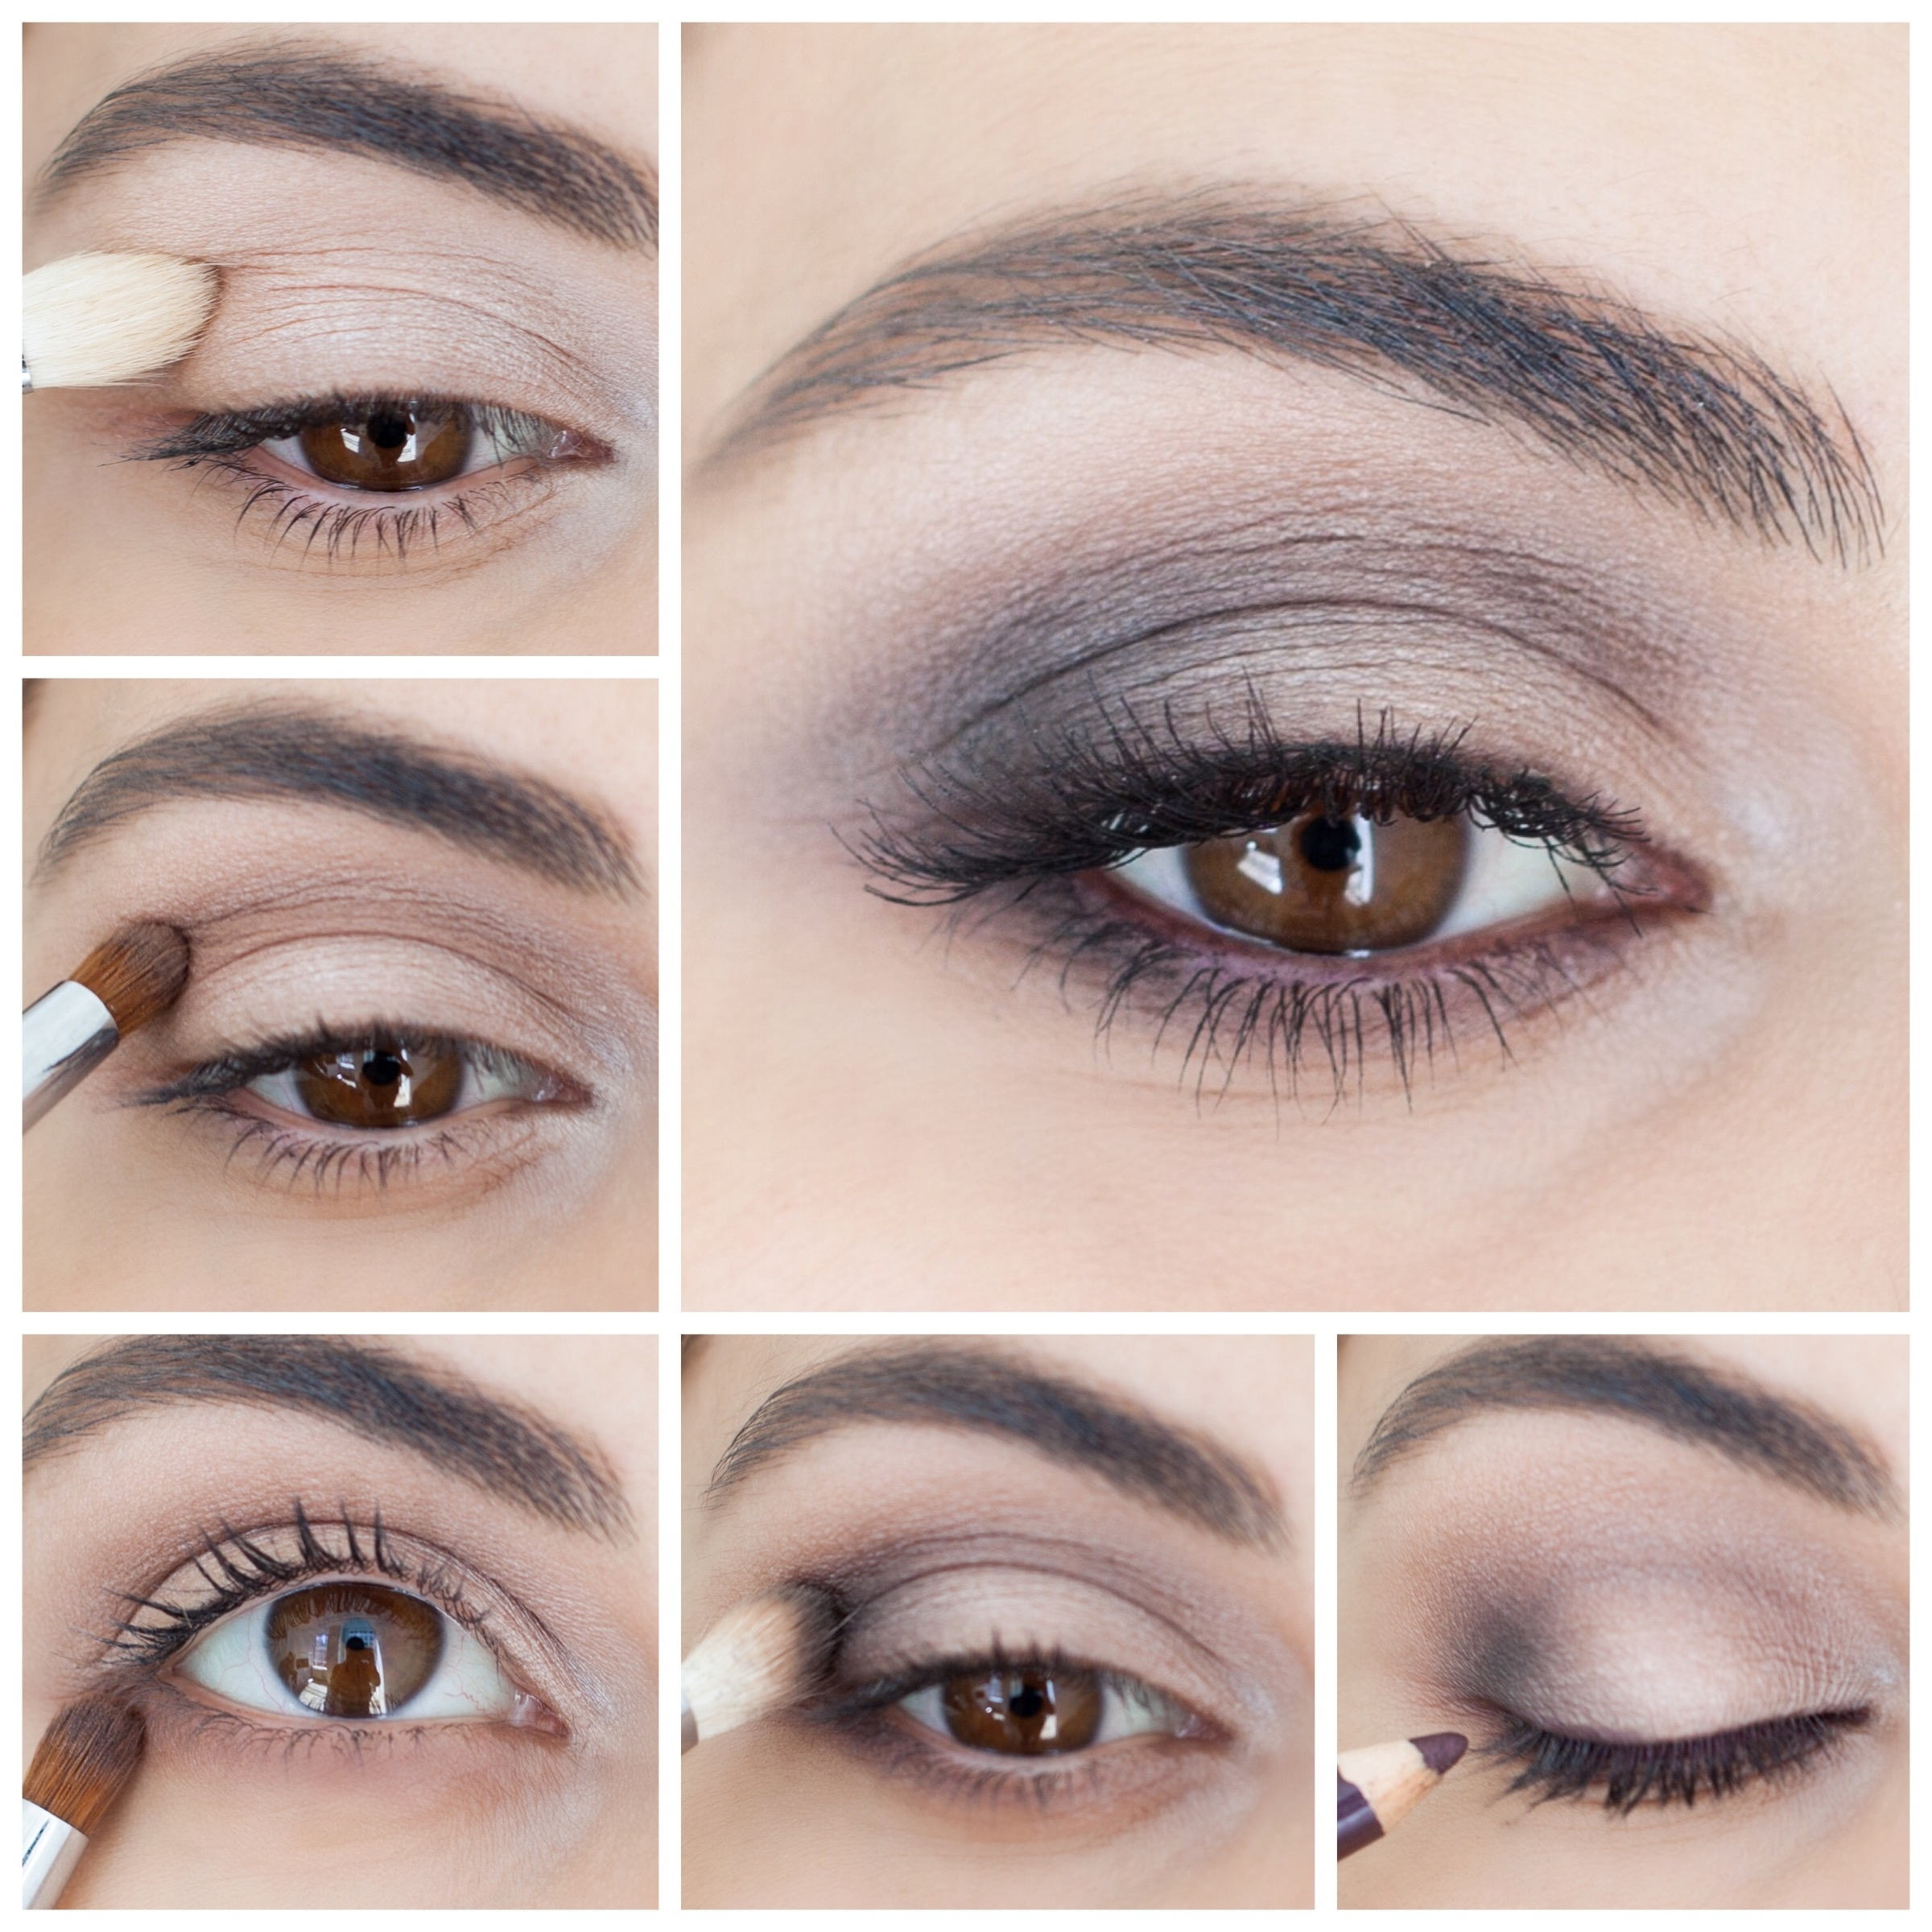 How To: Brown Smokey Eye - Simply Sona for Smoky Eye Instructions With Pictures